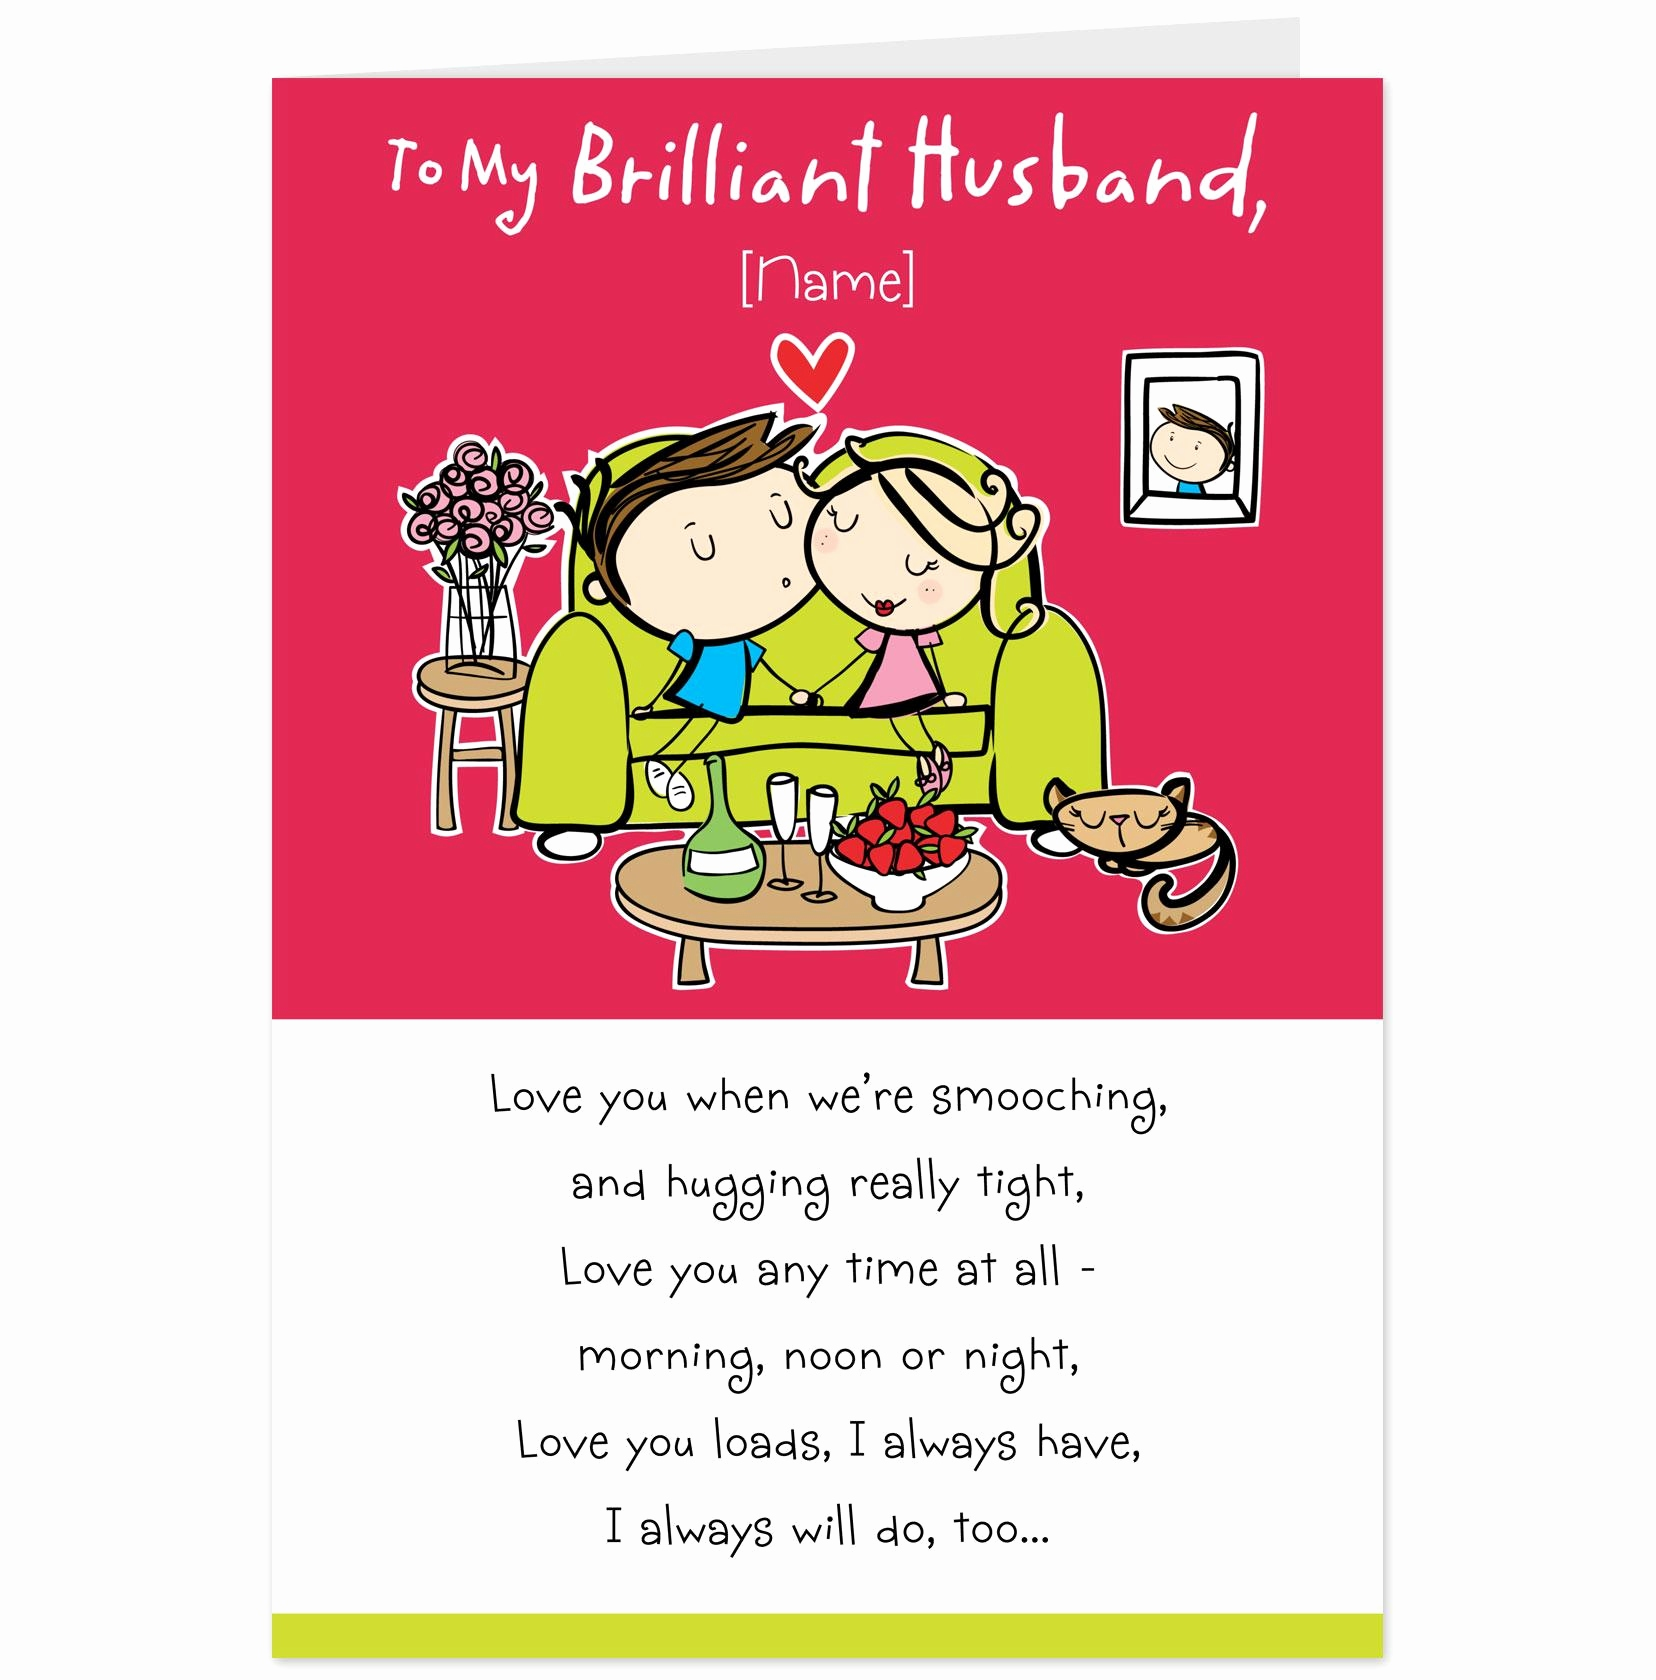 birthday card message for husband funny ; husband-birthday-card-message-elegant-birthday-card-some-stunning-funny-husband-birthday-cards-husband-of-husband-birthday-card-message